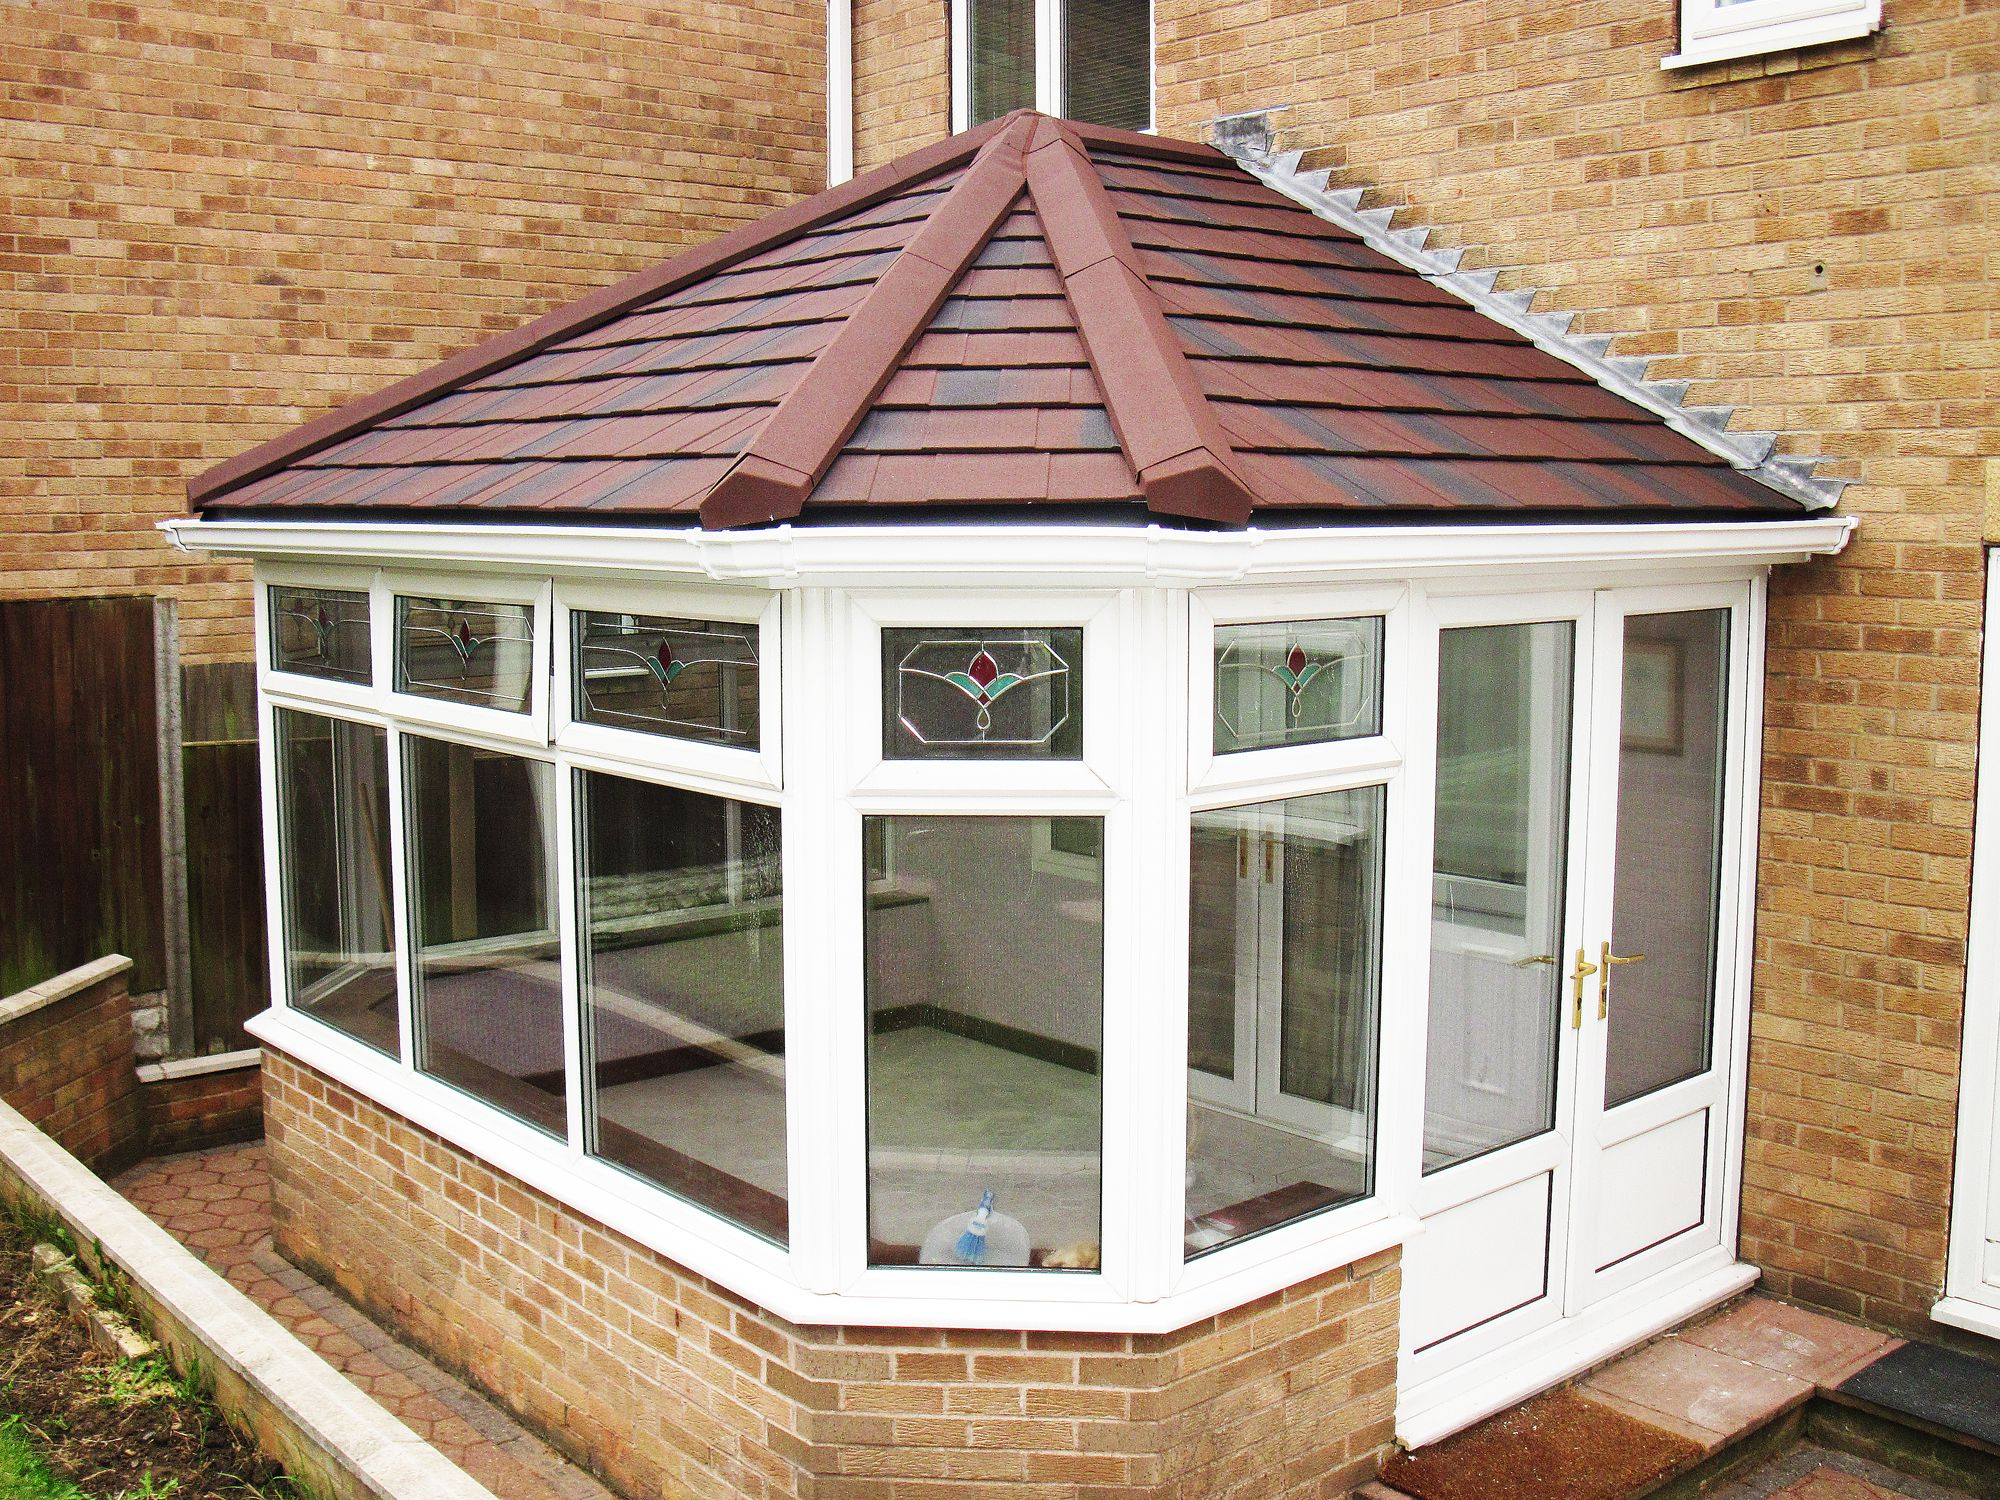 Supalite Tiled Conservatory Roofing System With Burnt Umber Metrotiles Finished Off With White Gutt Tiled Conservatory Roof Roofing Systems Conservatory Roof